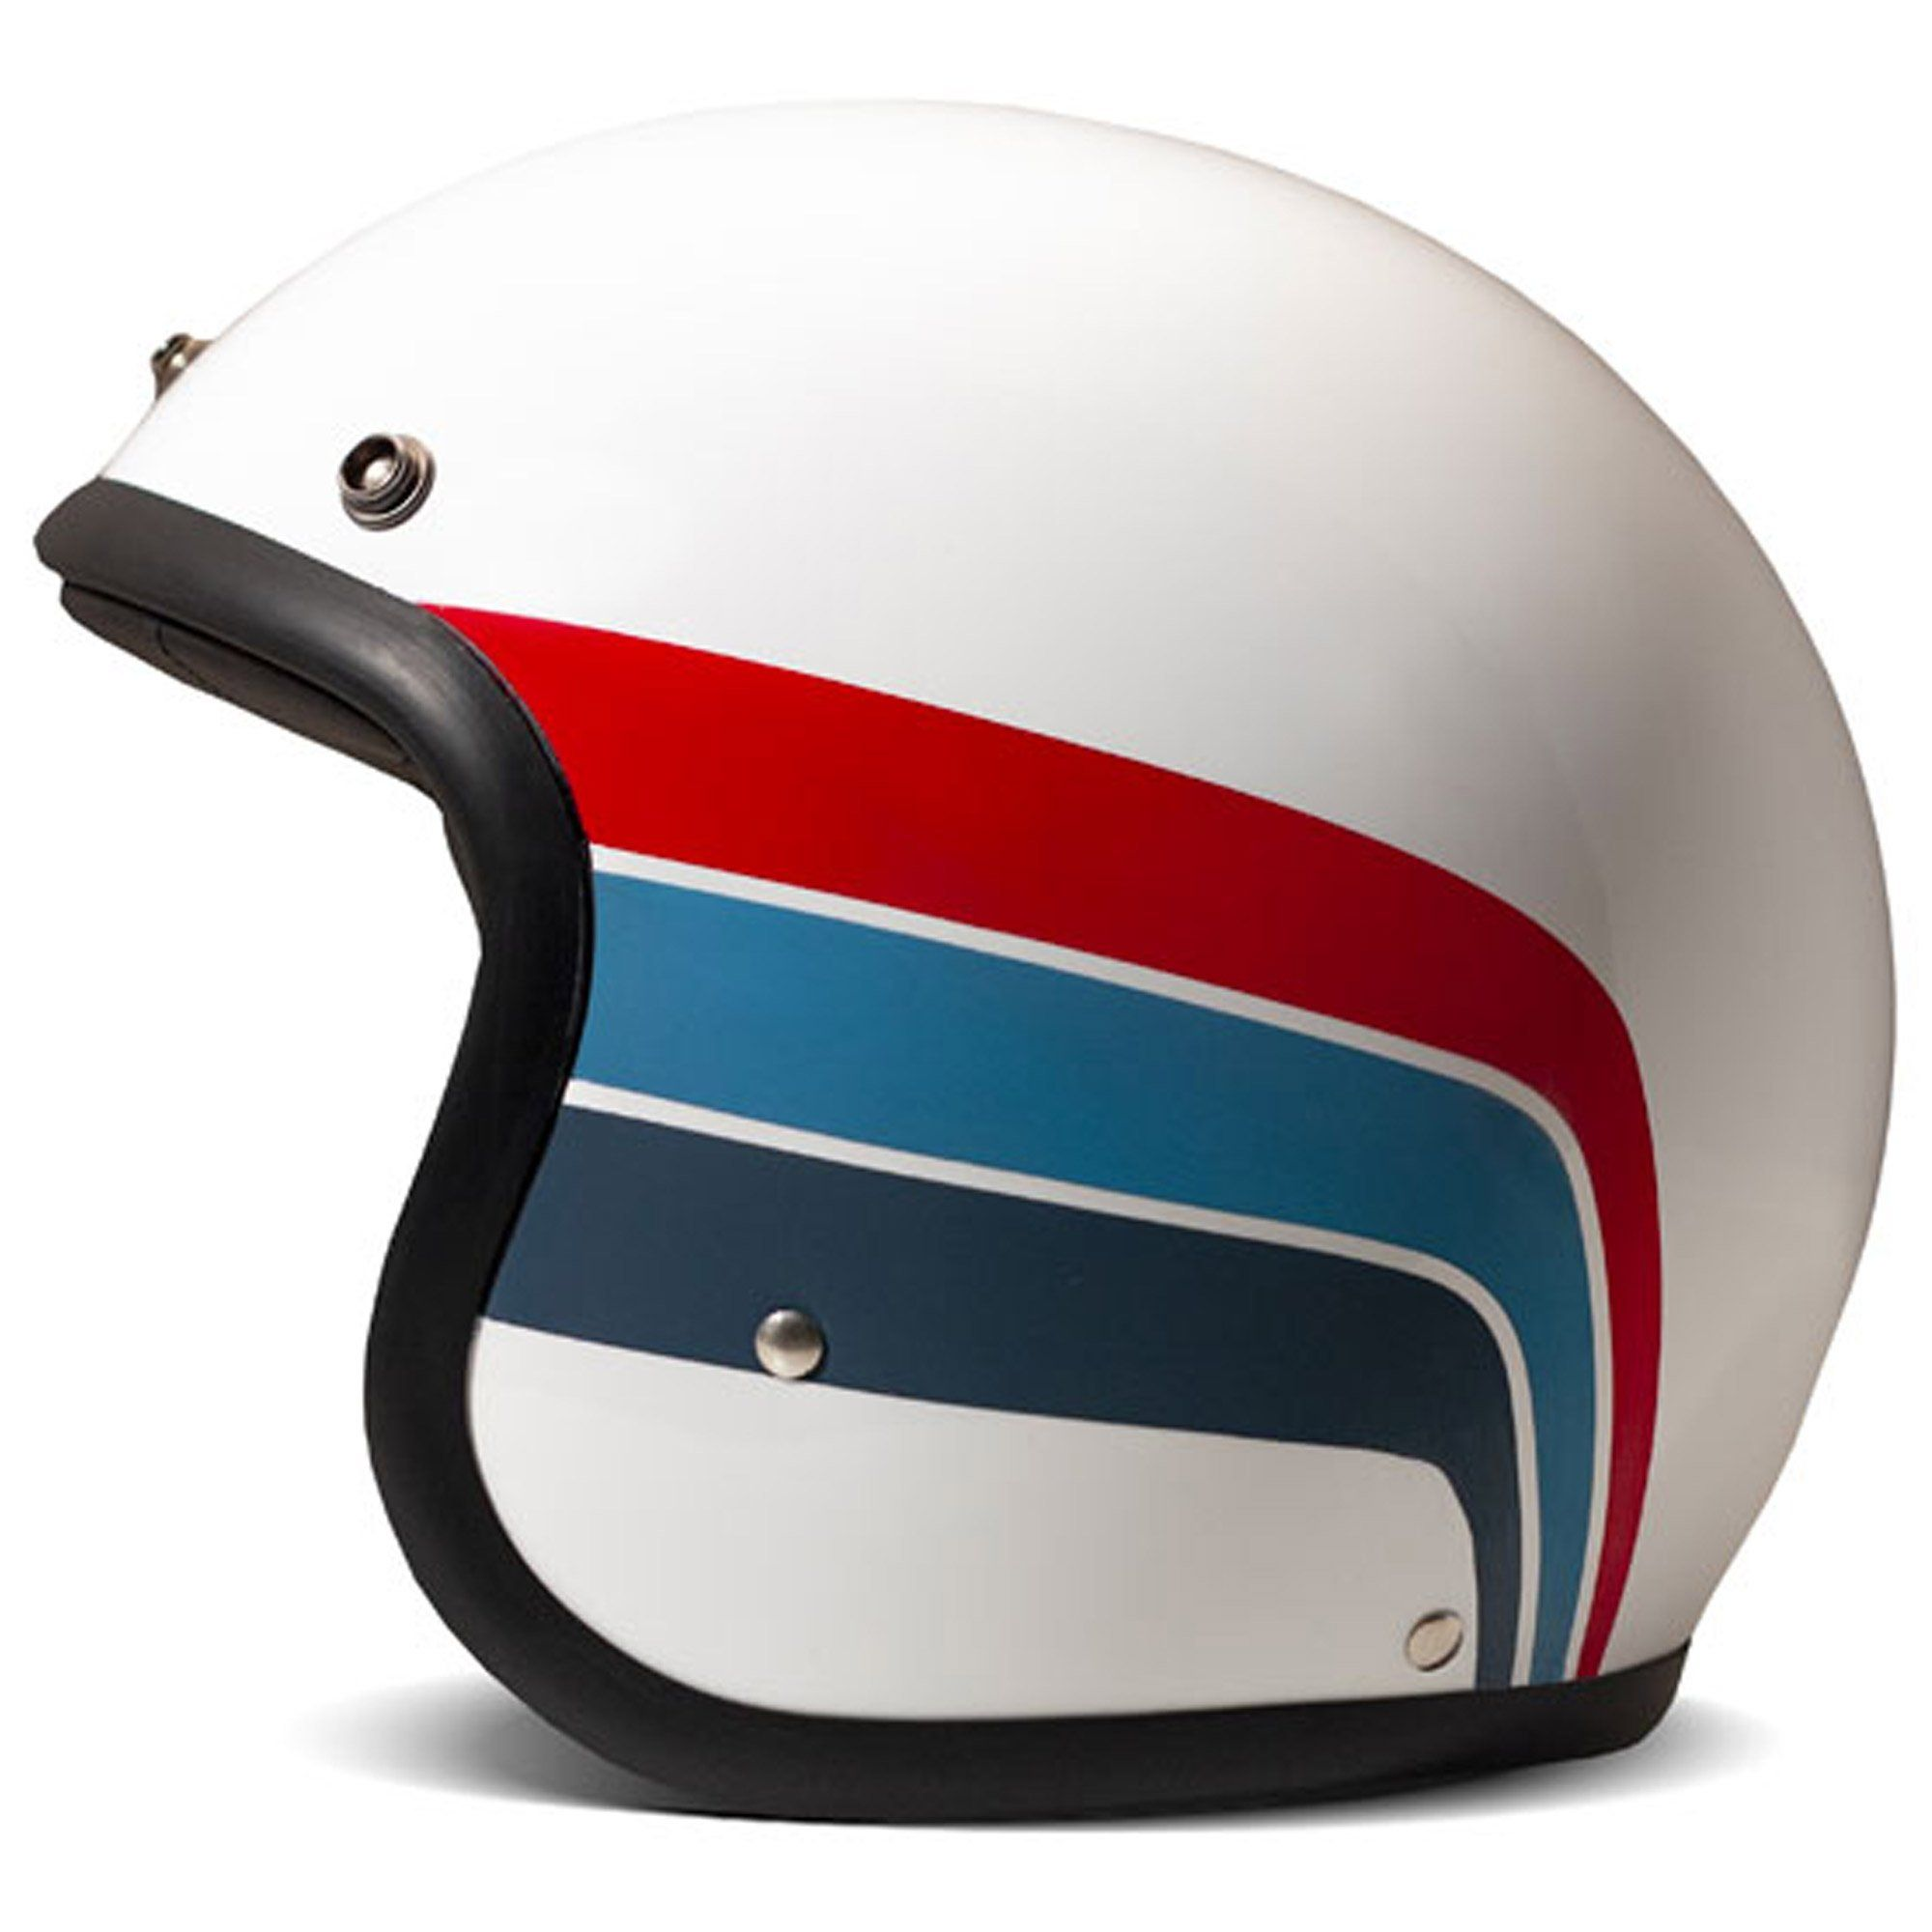 Dmd Vintage Helmet Artemis Bike Exif Equipment Vintage